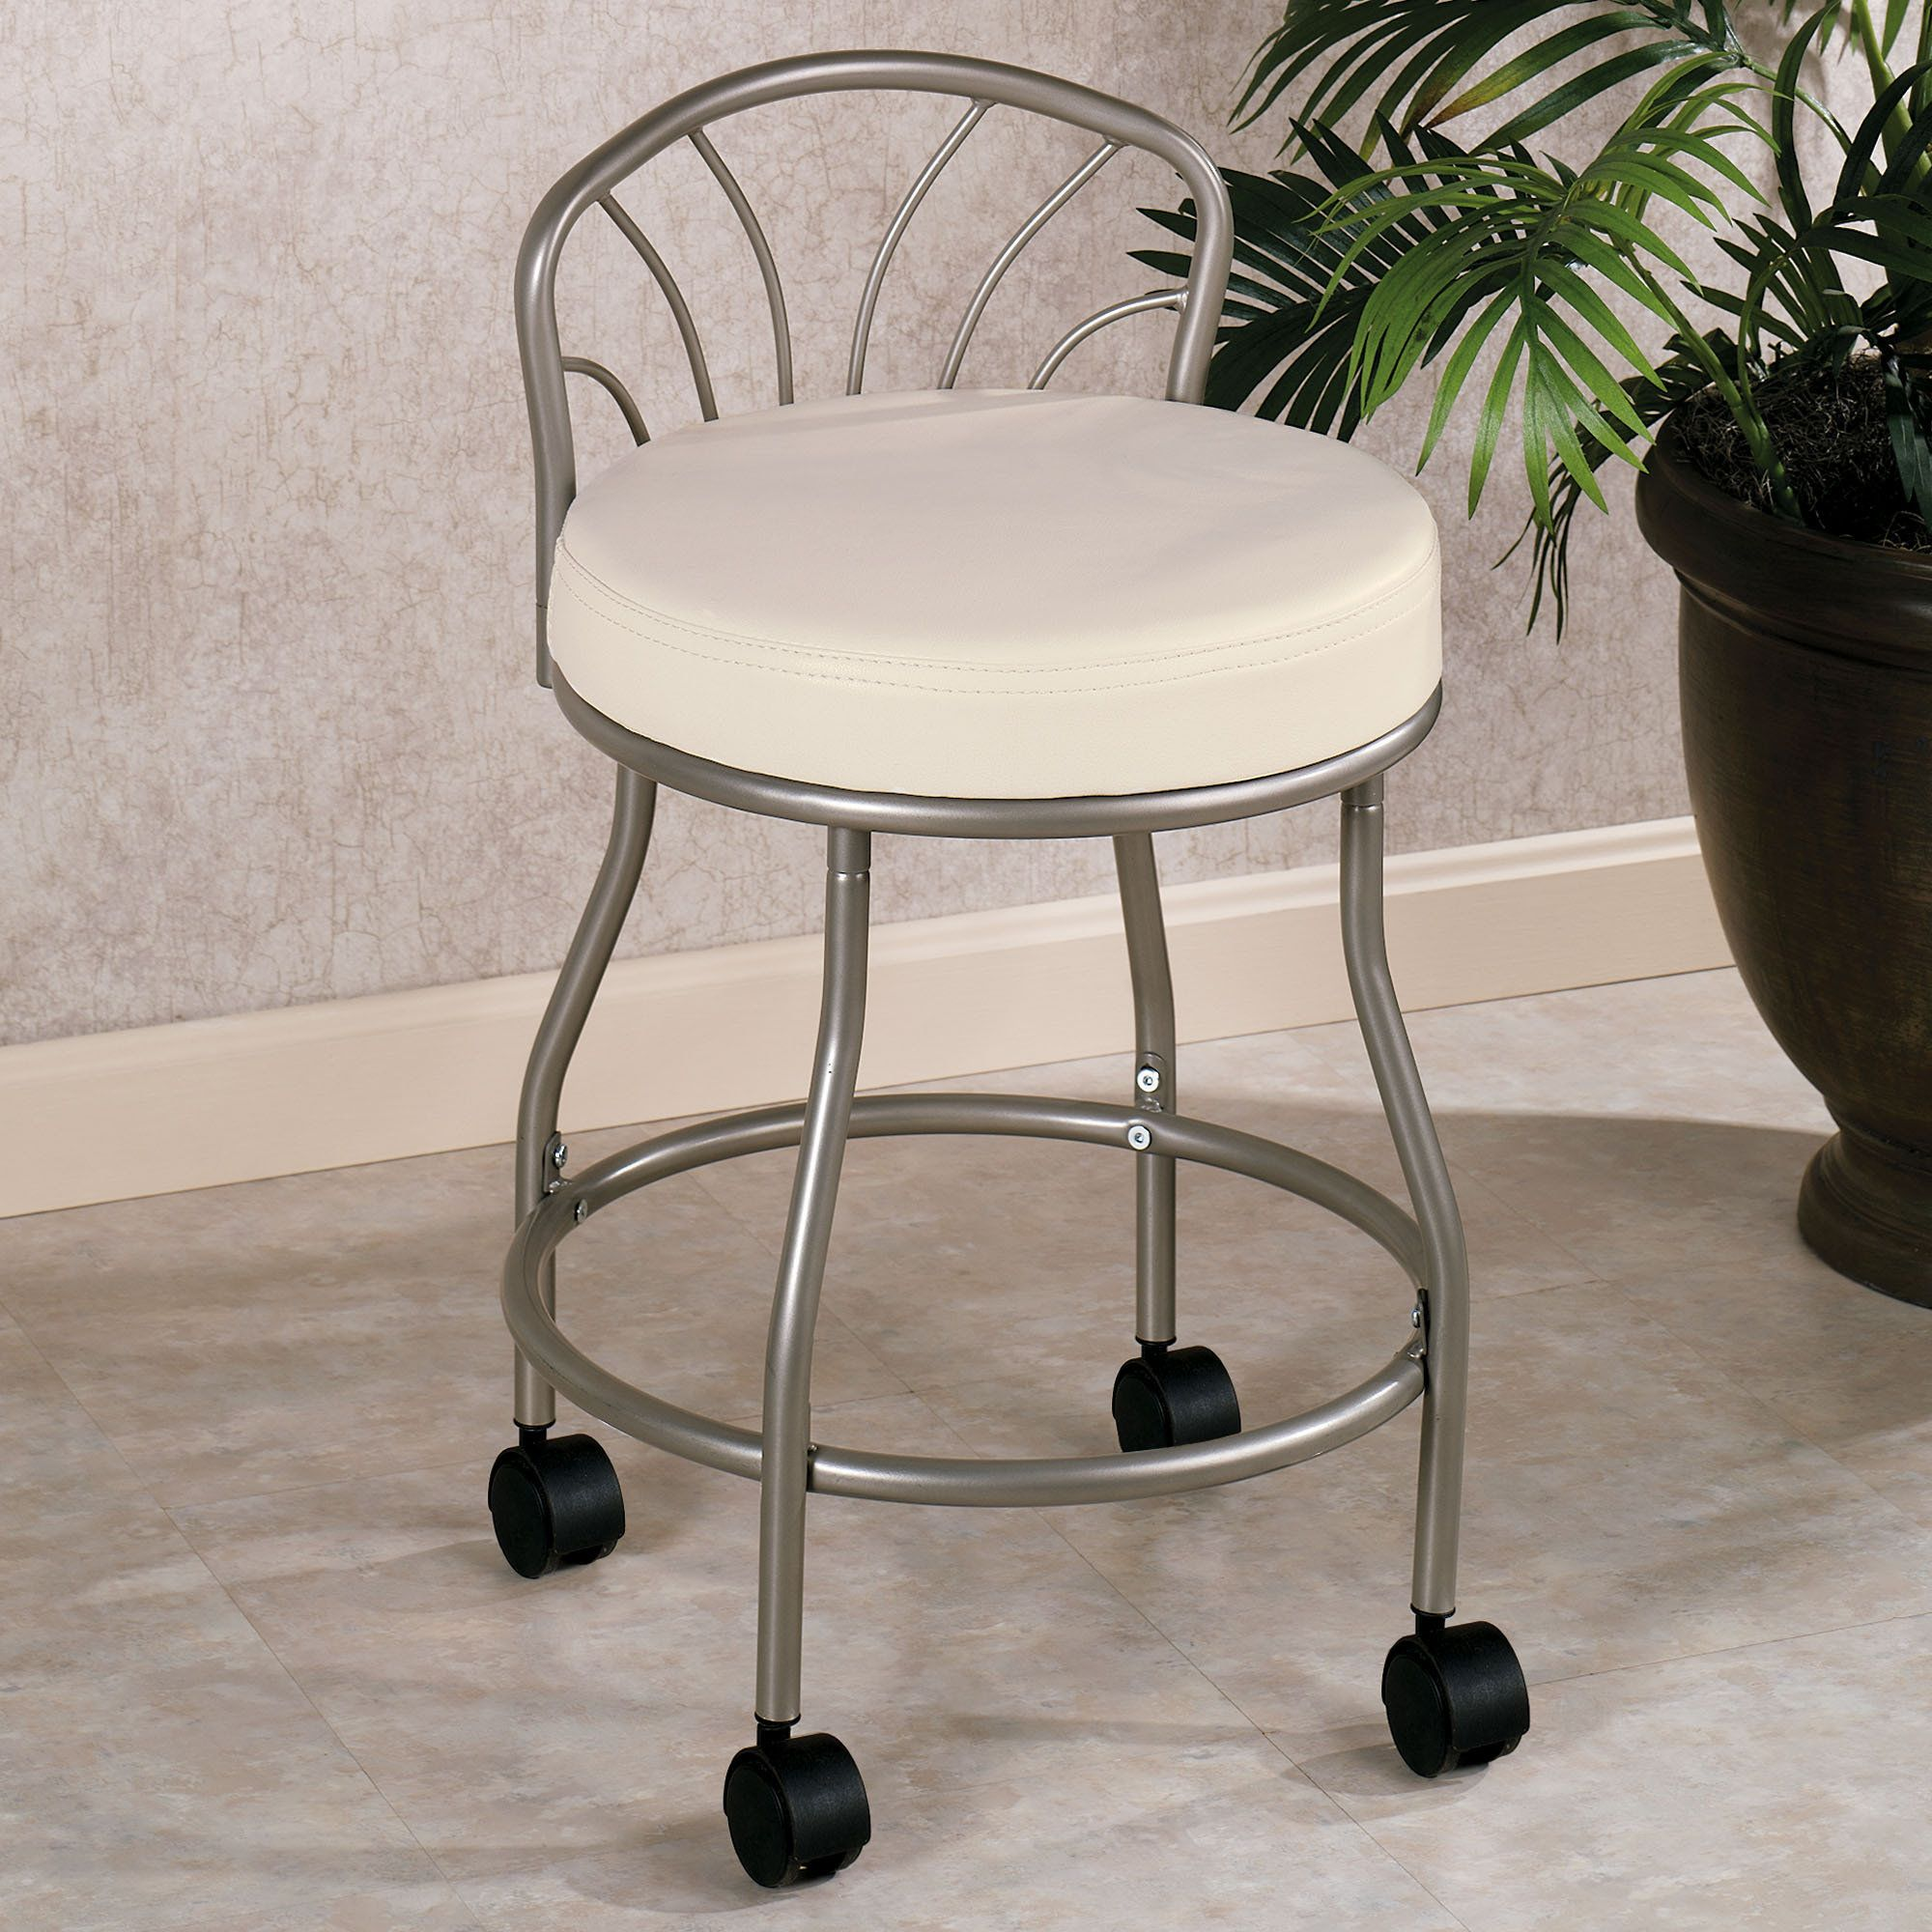 Uncategorized Vanity Stool Chair flare back powder coat nickel finish vanity chair vanities and chair